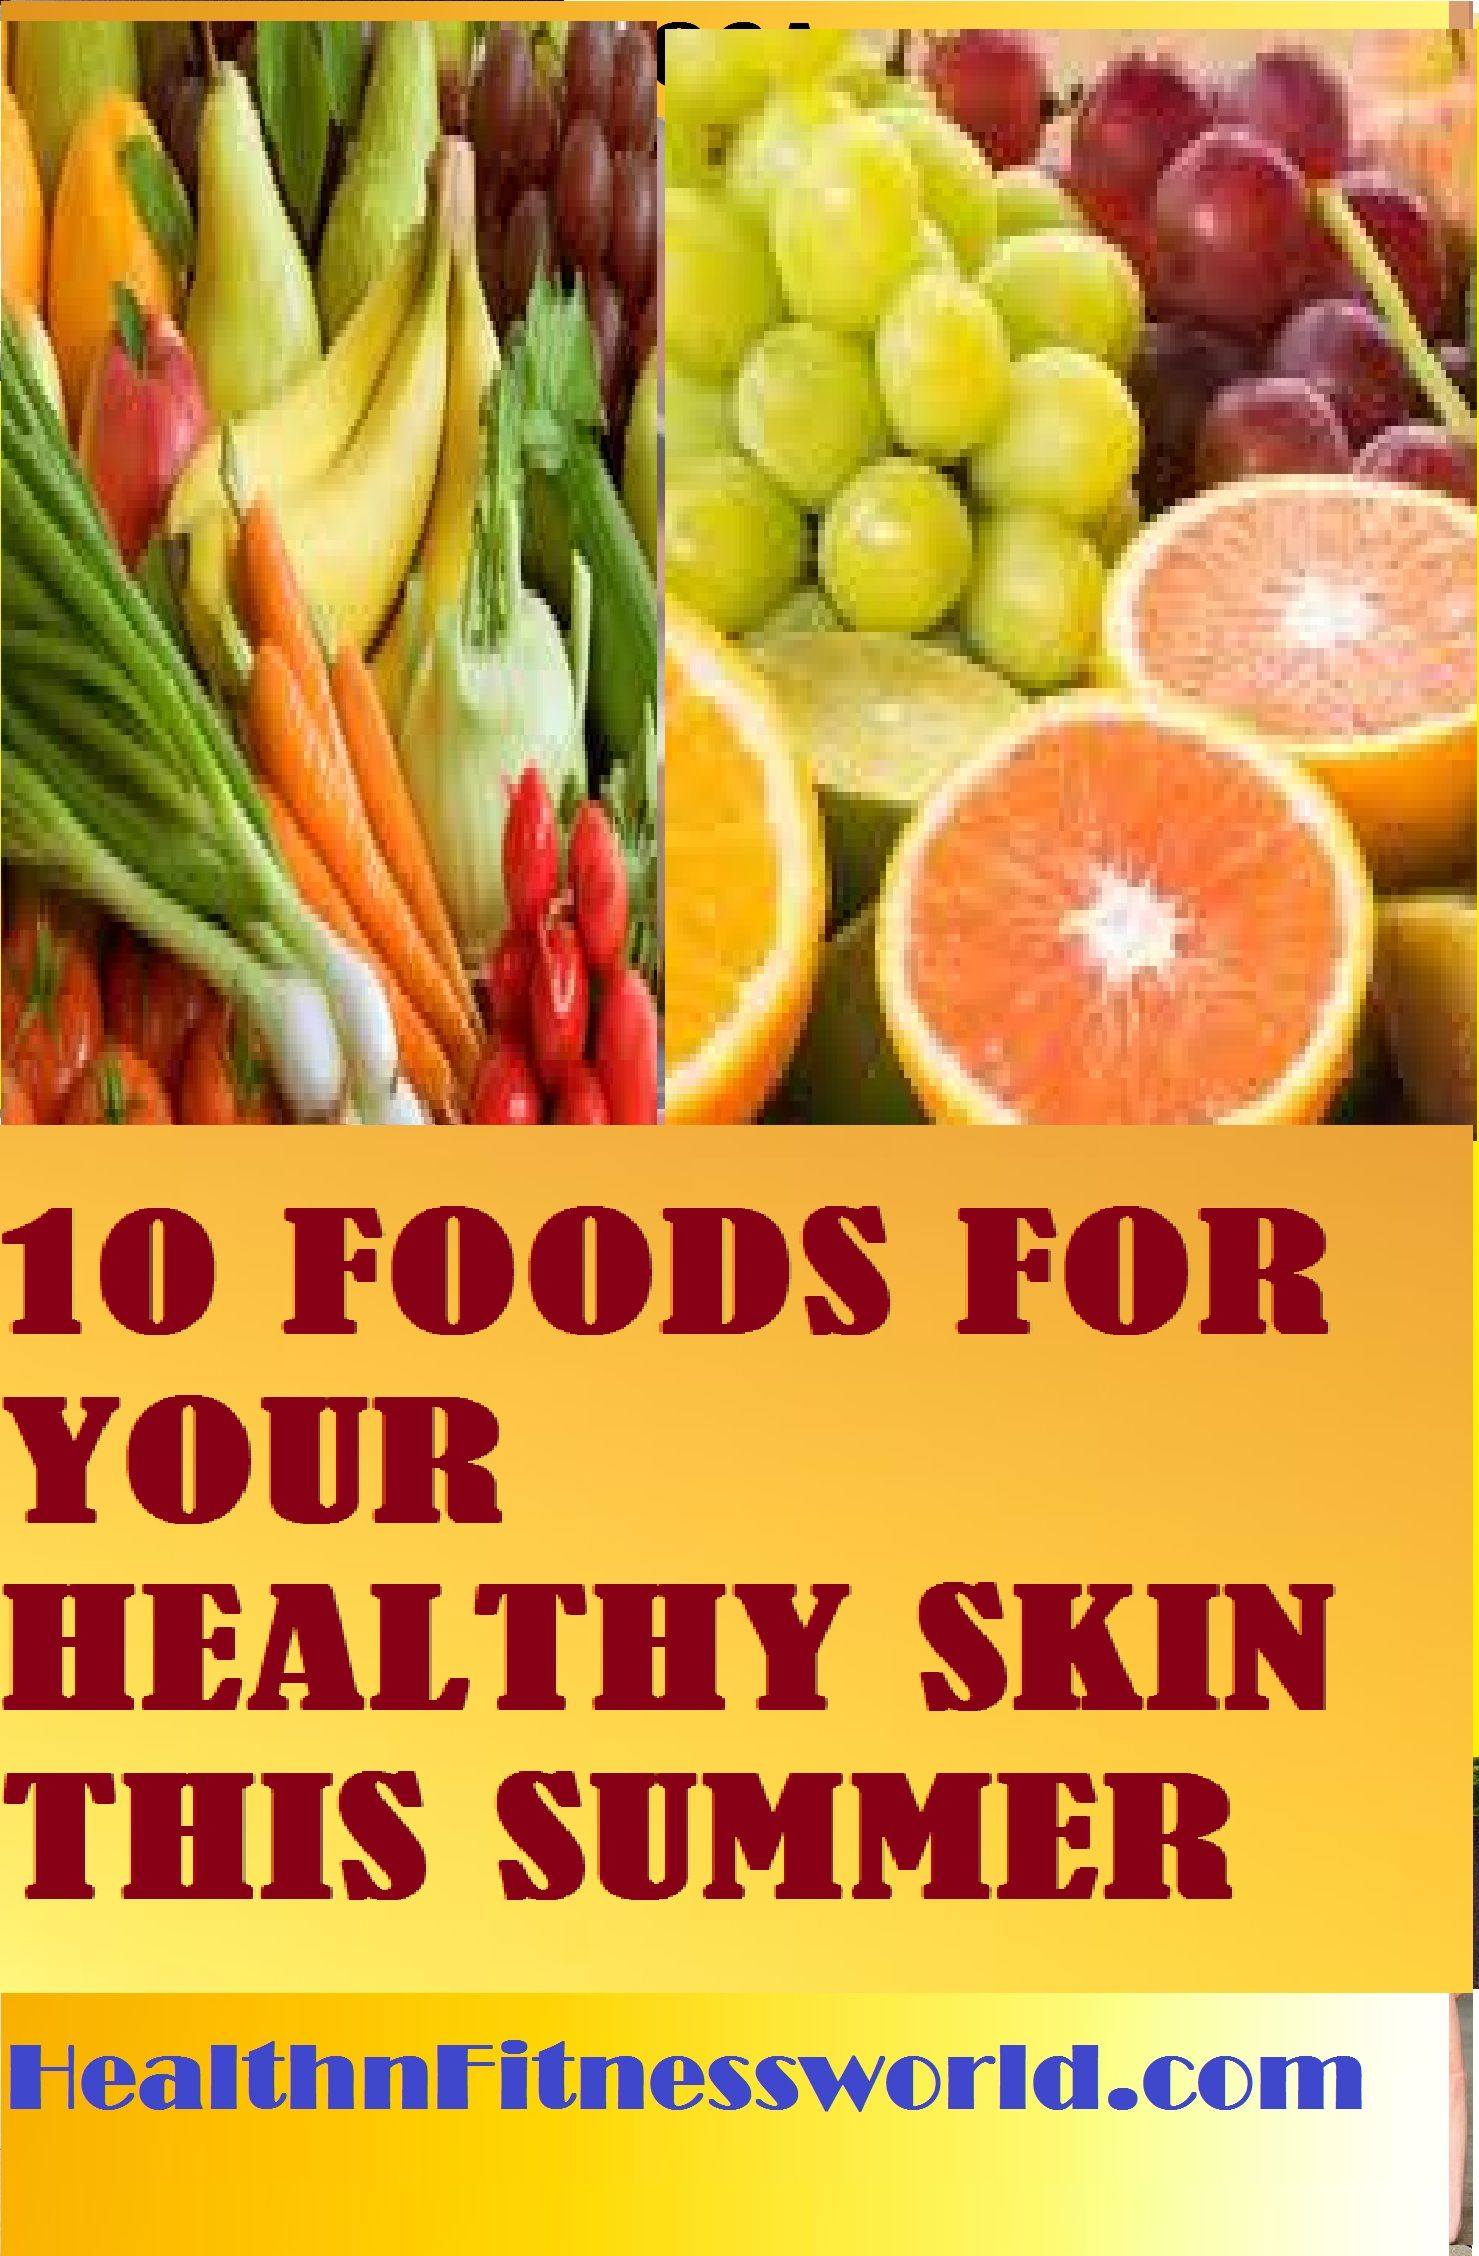 How To Maintain Healthy Skin This Summer. The List Of